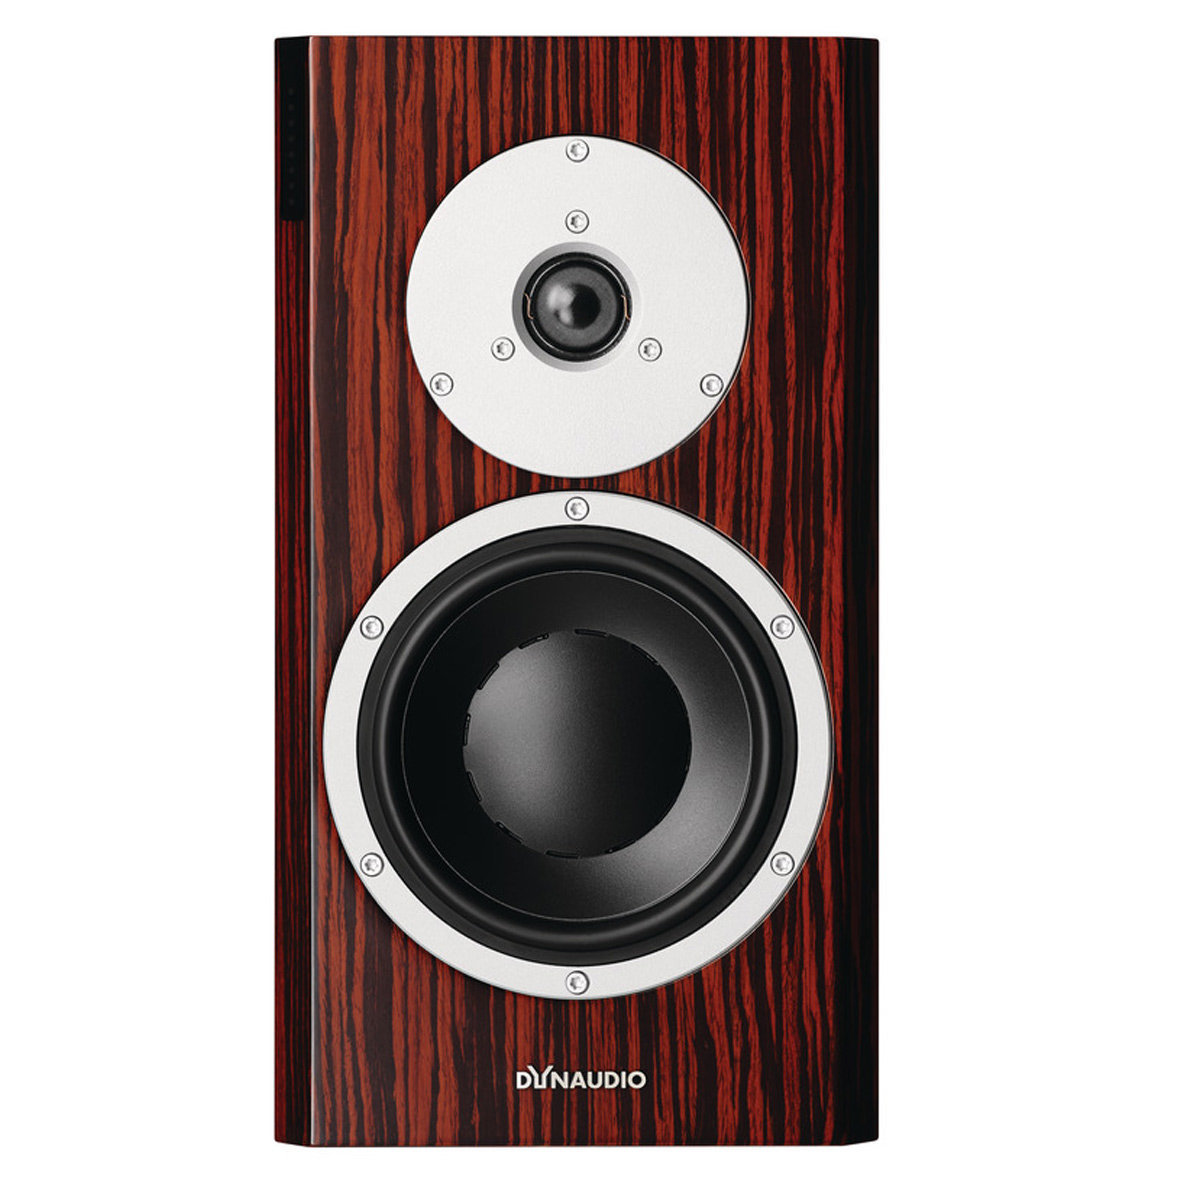 View Larger Image Of Focus 200 XD Wireless Compact High Res Bookshelf Speaker